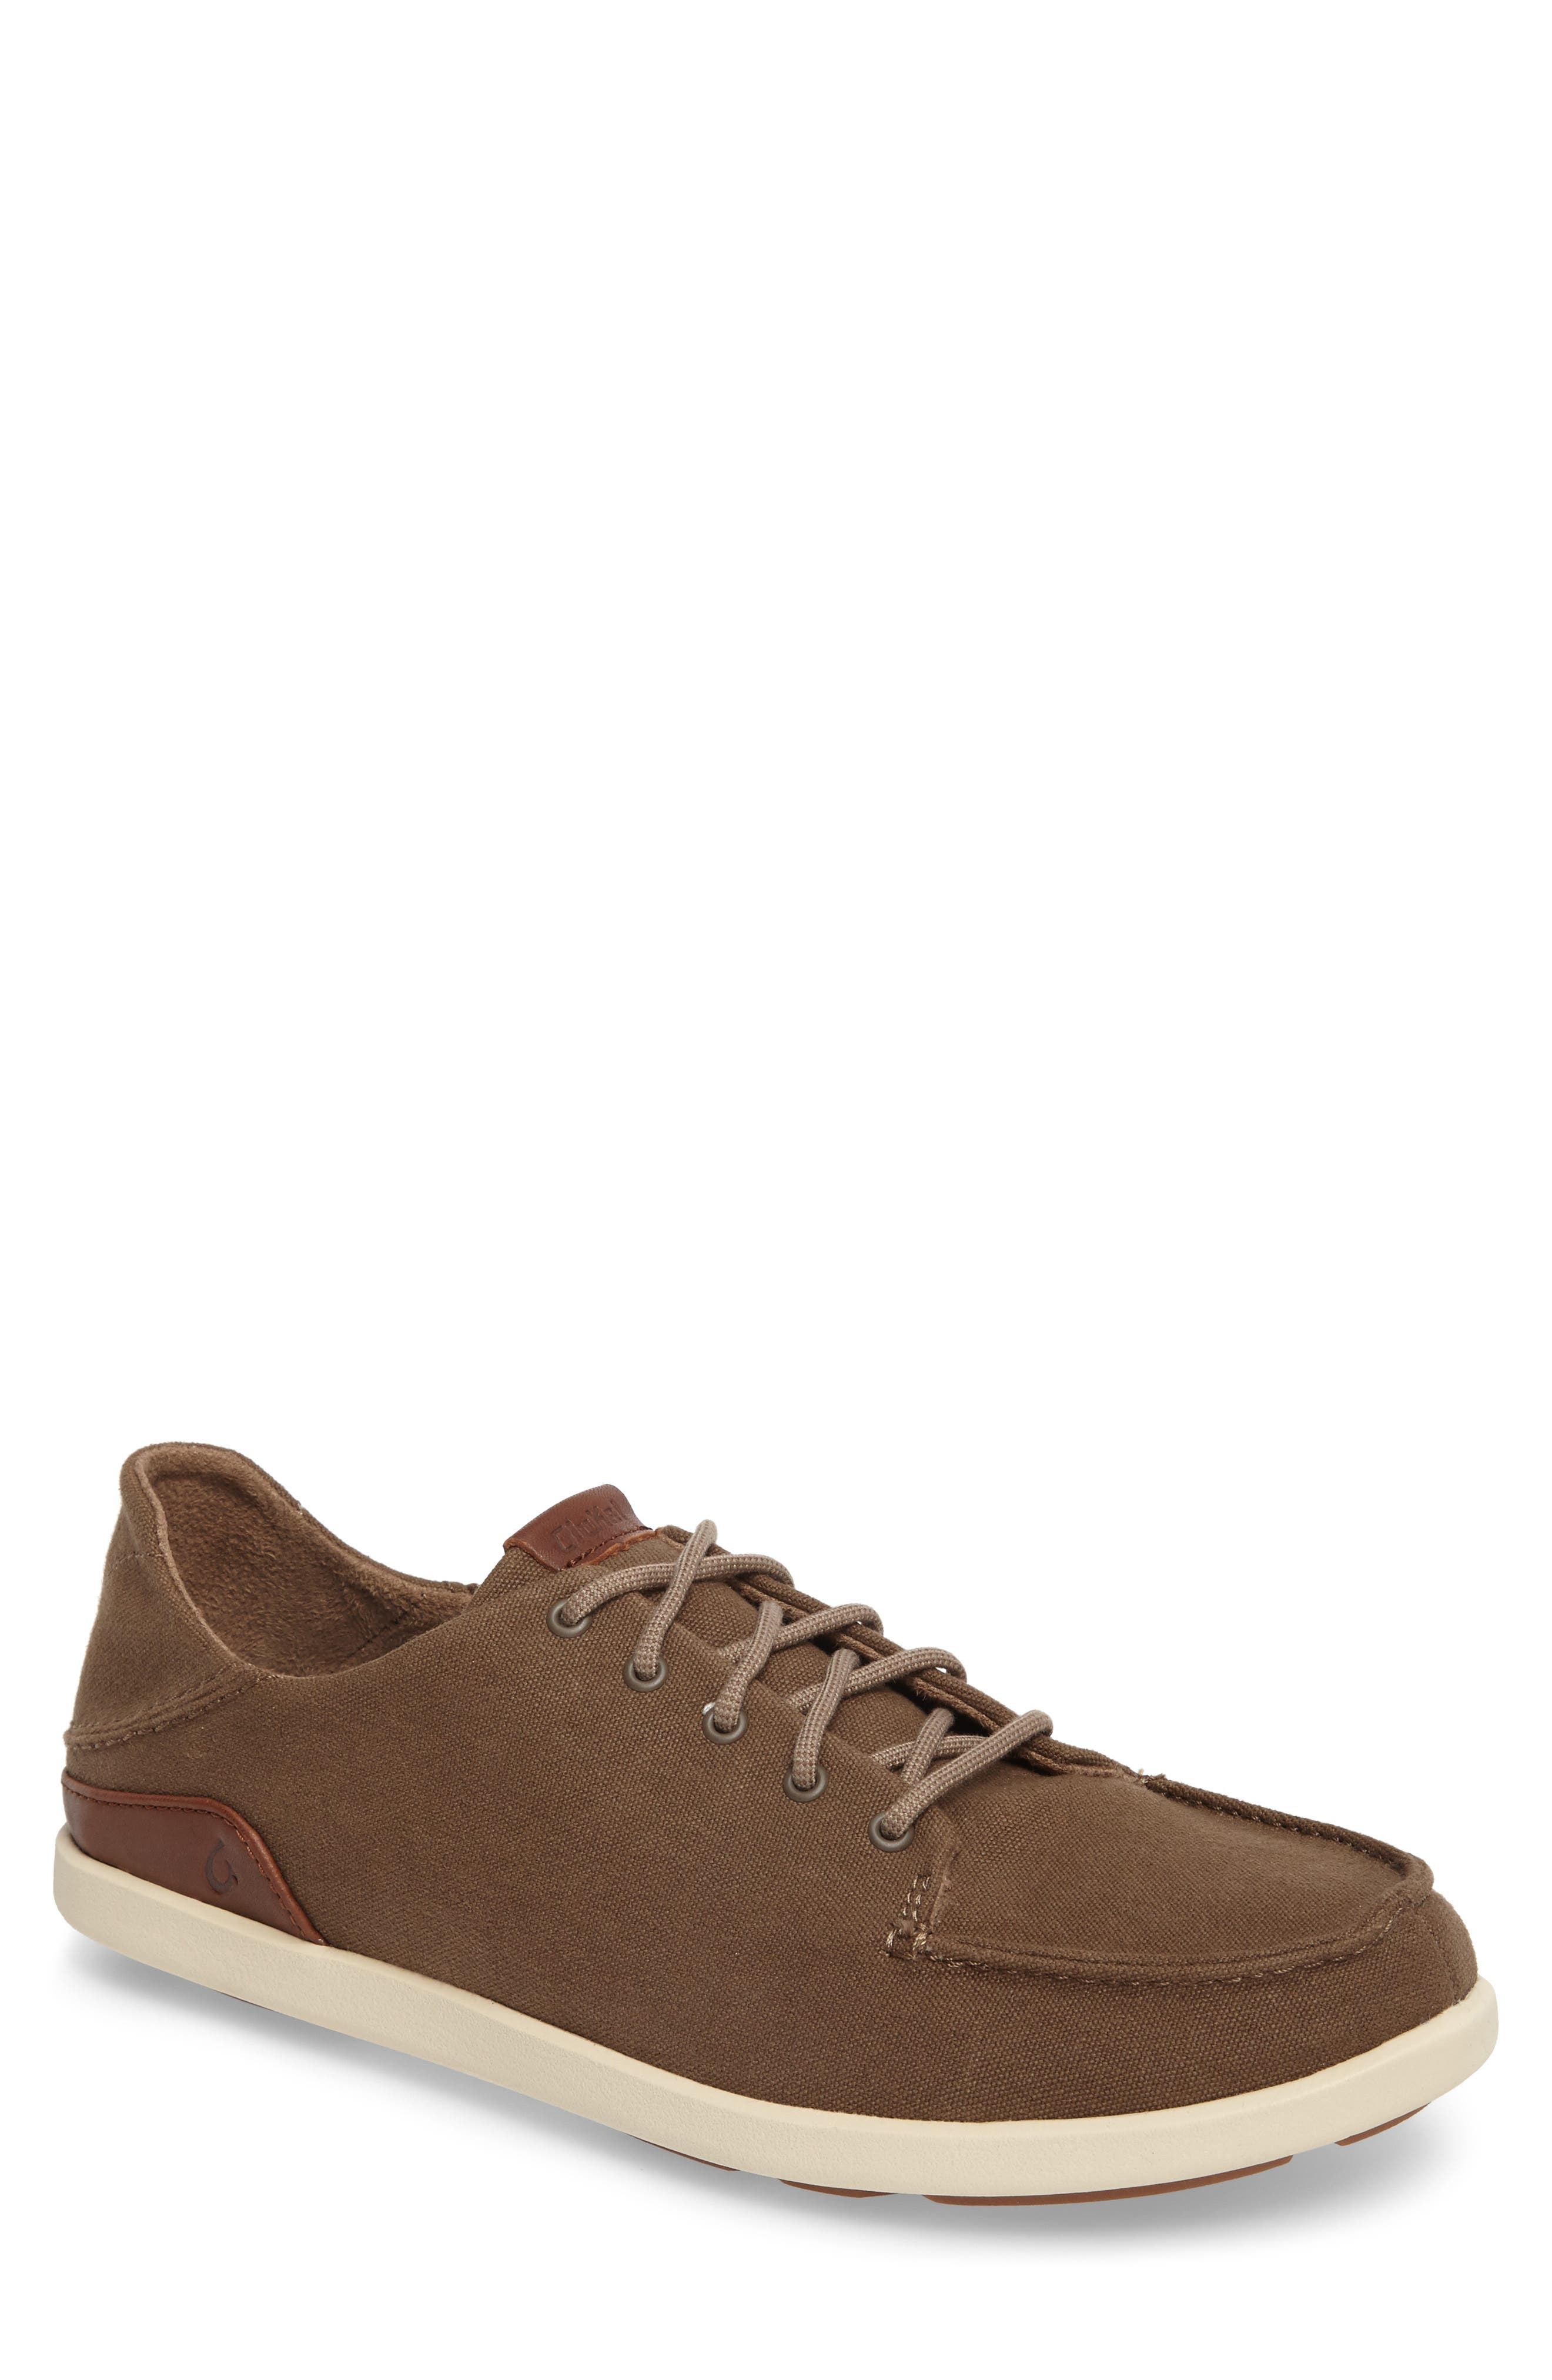 Manoa Sneaker,                         Main,                         color, MUSTANG/ TOFFEE